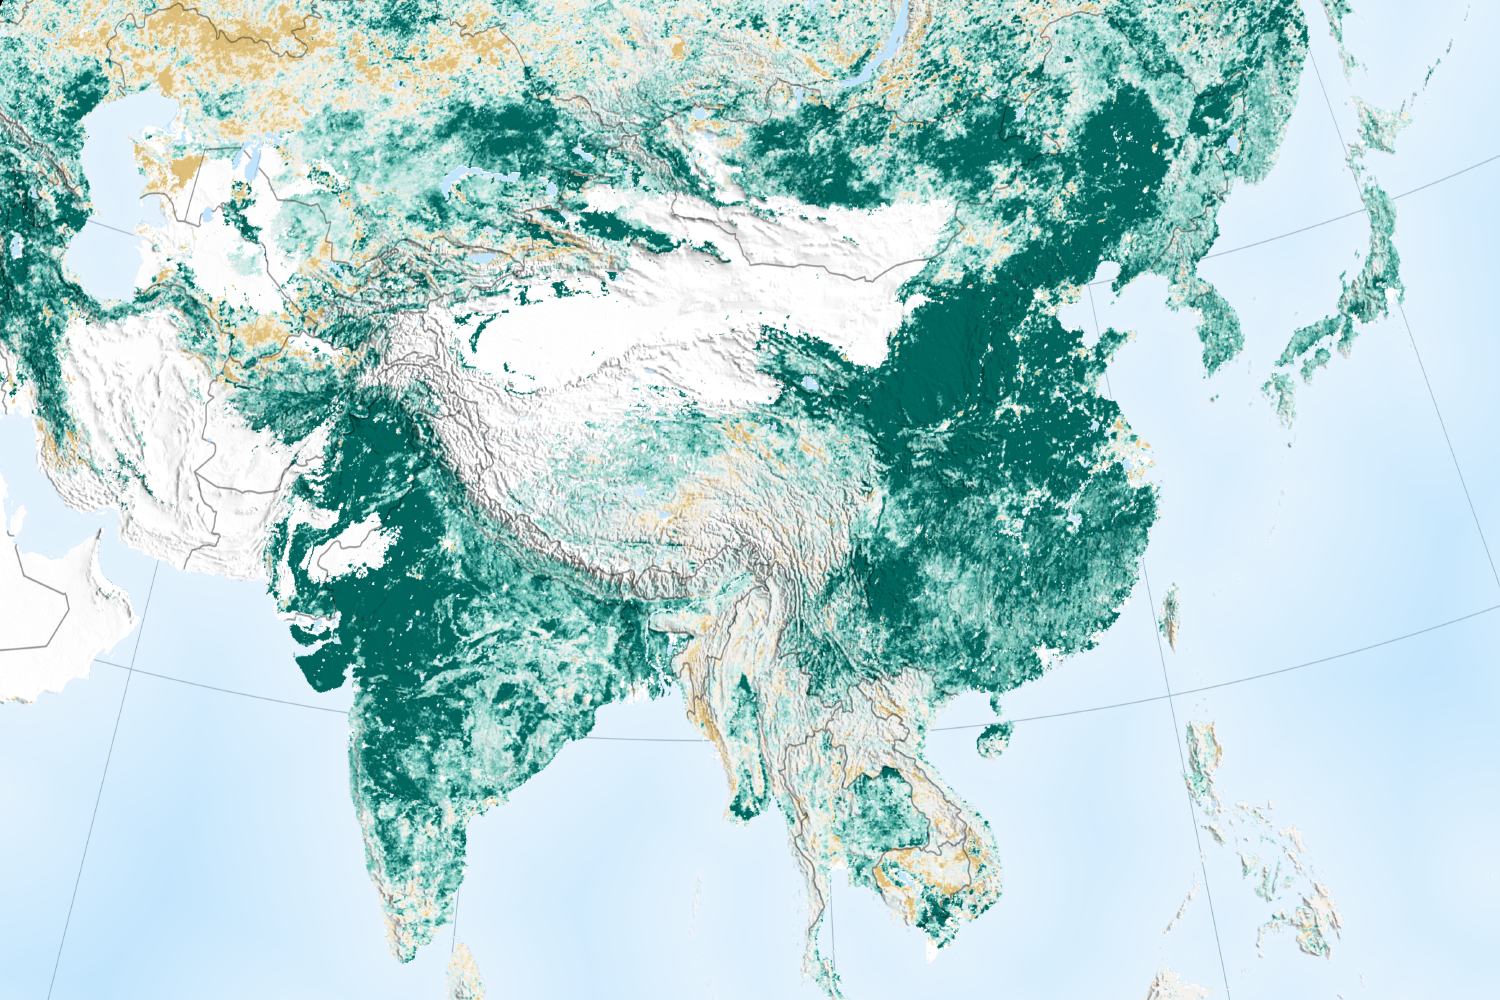 Map Of Asia India.China And India Lead The Way In Greening